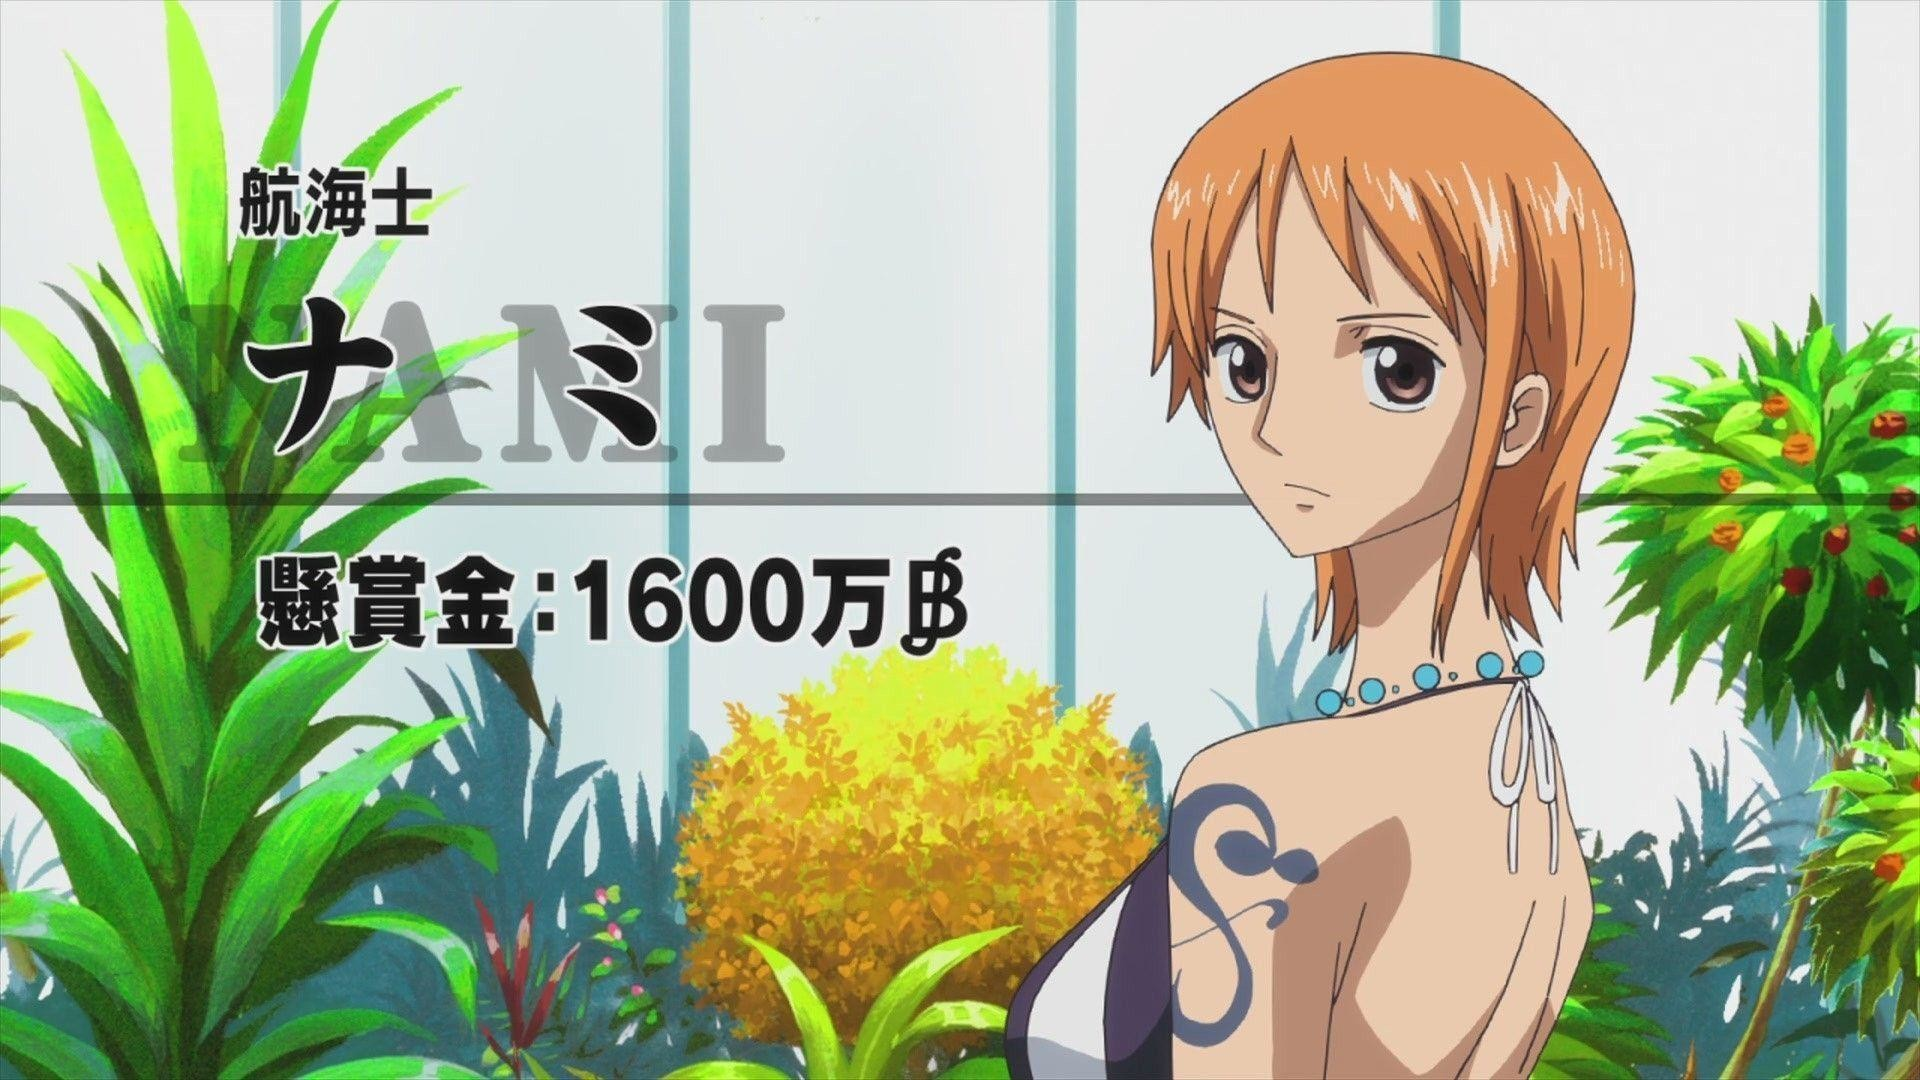 Res: 1920x1080, Wallpapers One Piece 2015 Nami And Law